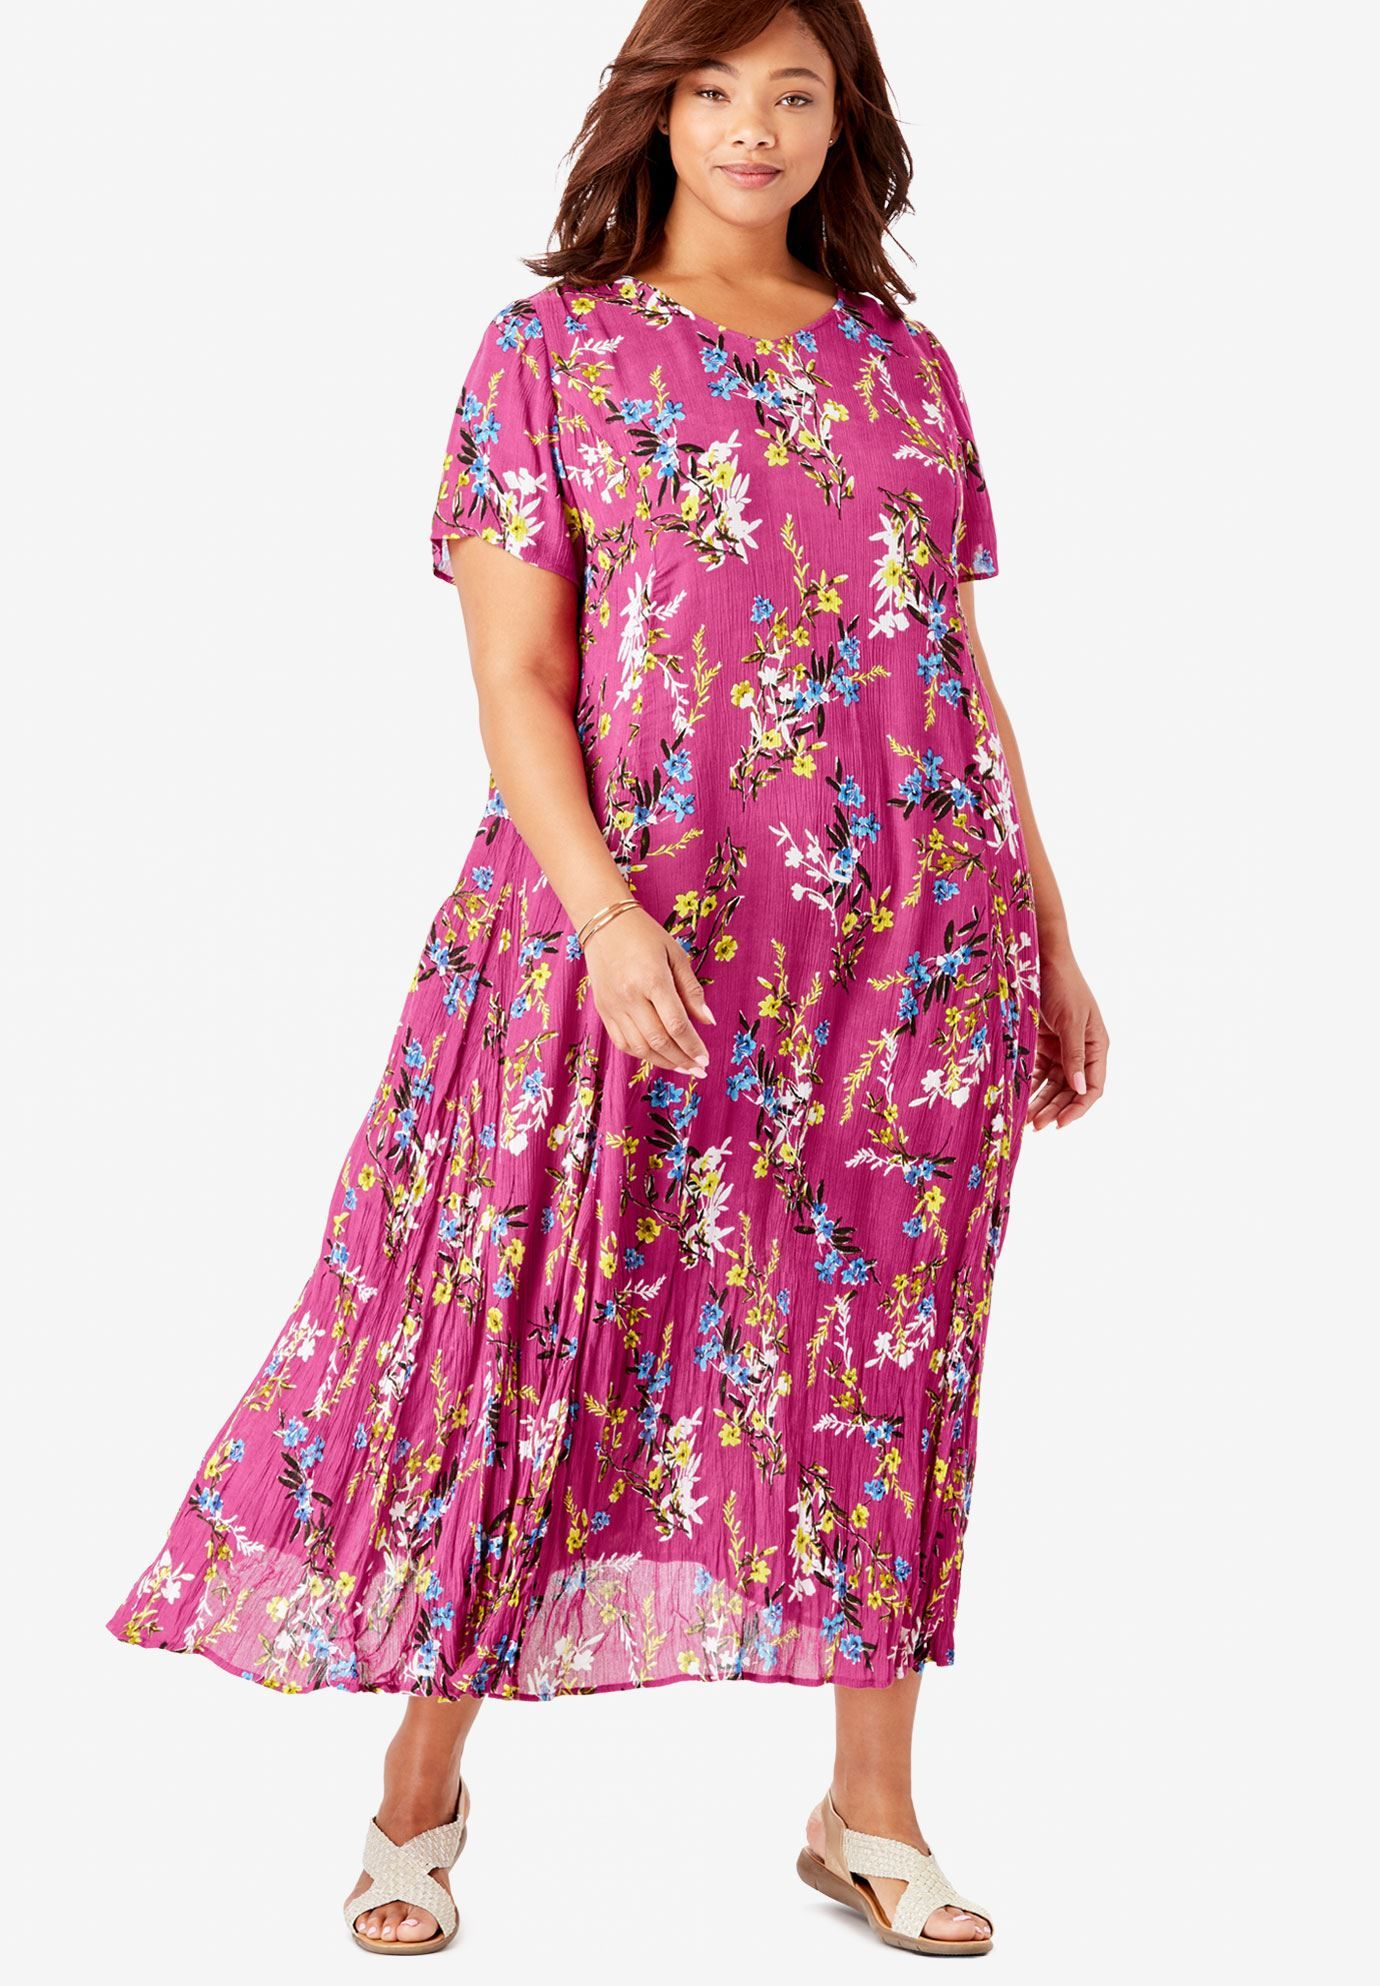 Crinkle Dress, BRIGHT BERRY FREE FLORAL   Fashion   Dresses ...